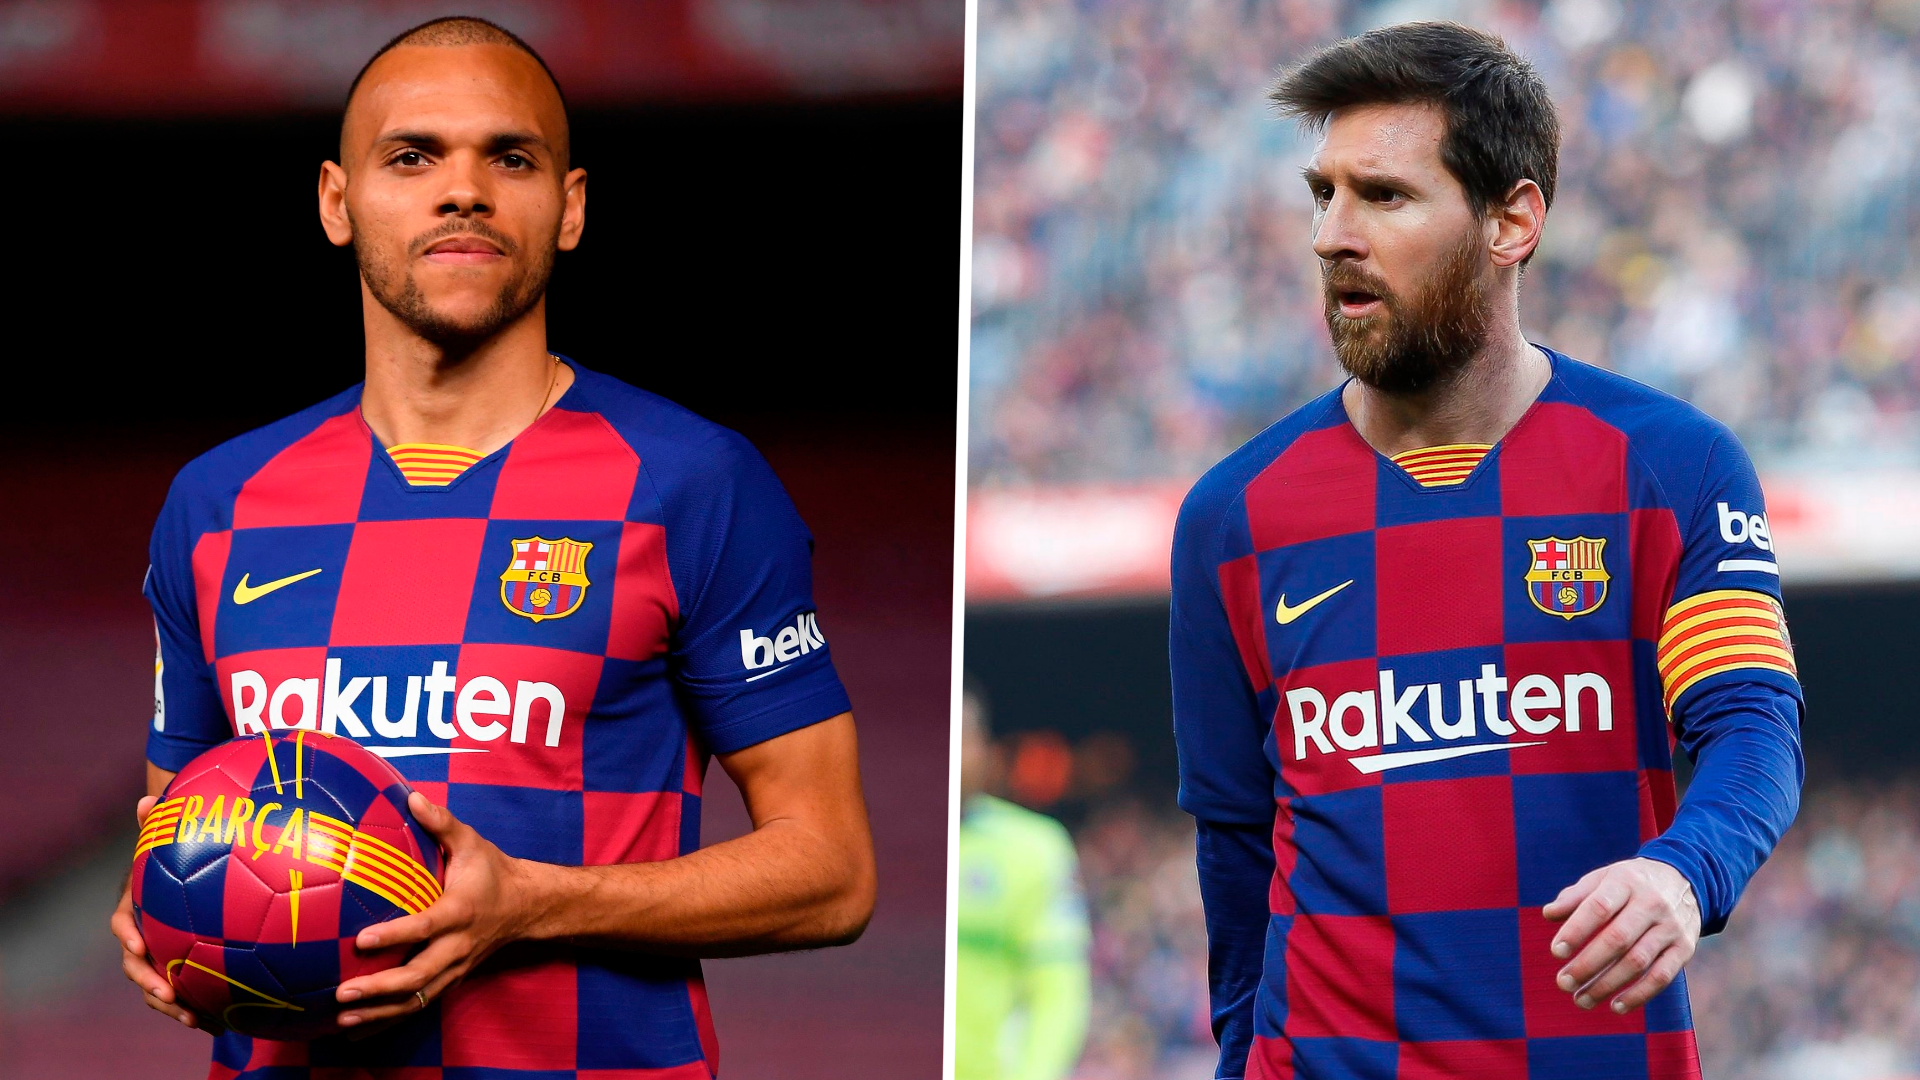 'It would be so disrespectful' - Braithwaite denies asking for No 10 shirt if Messi leaves Barcelona